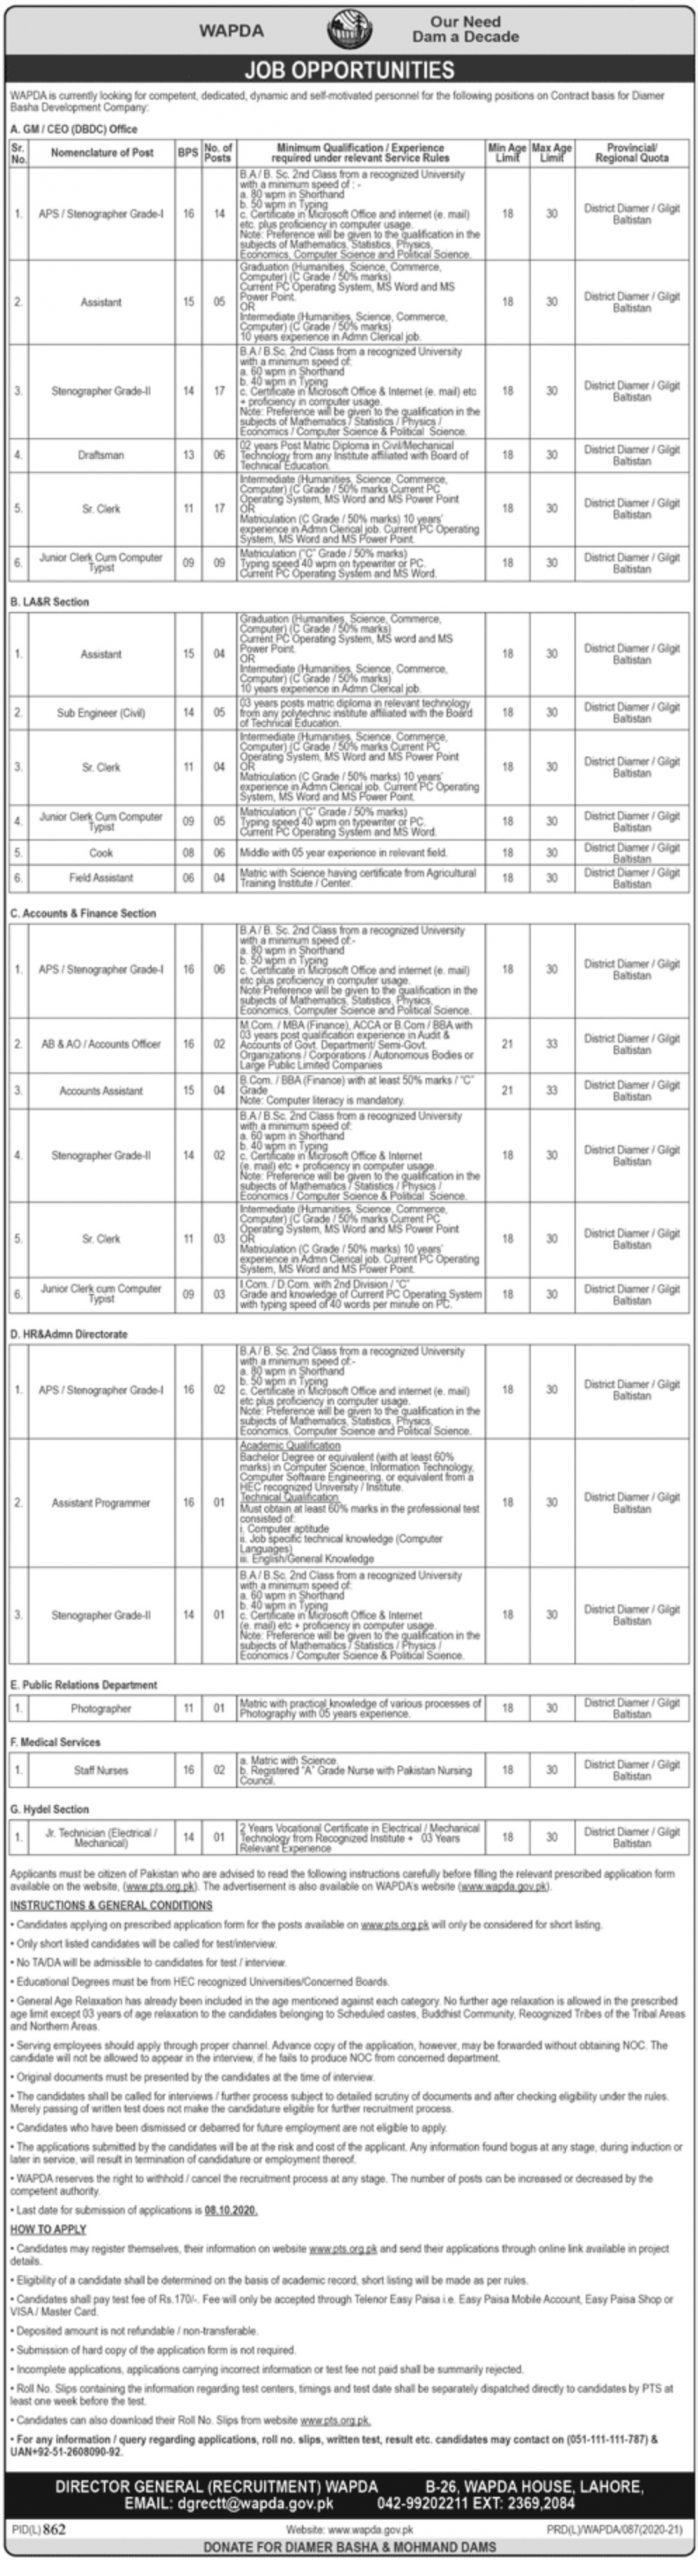 Wapda Jobs September 2020 PTS Latest